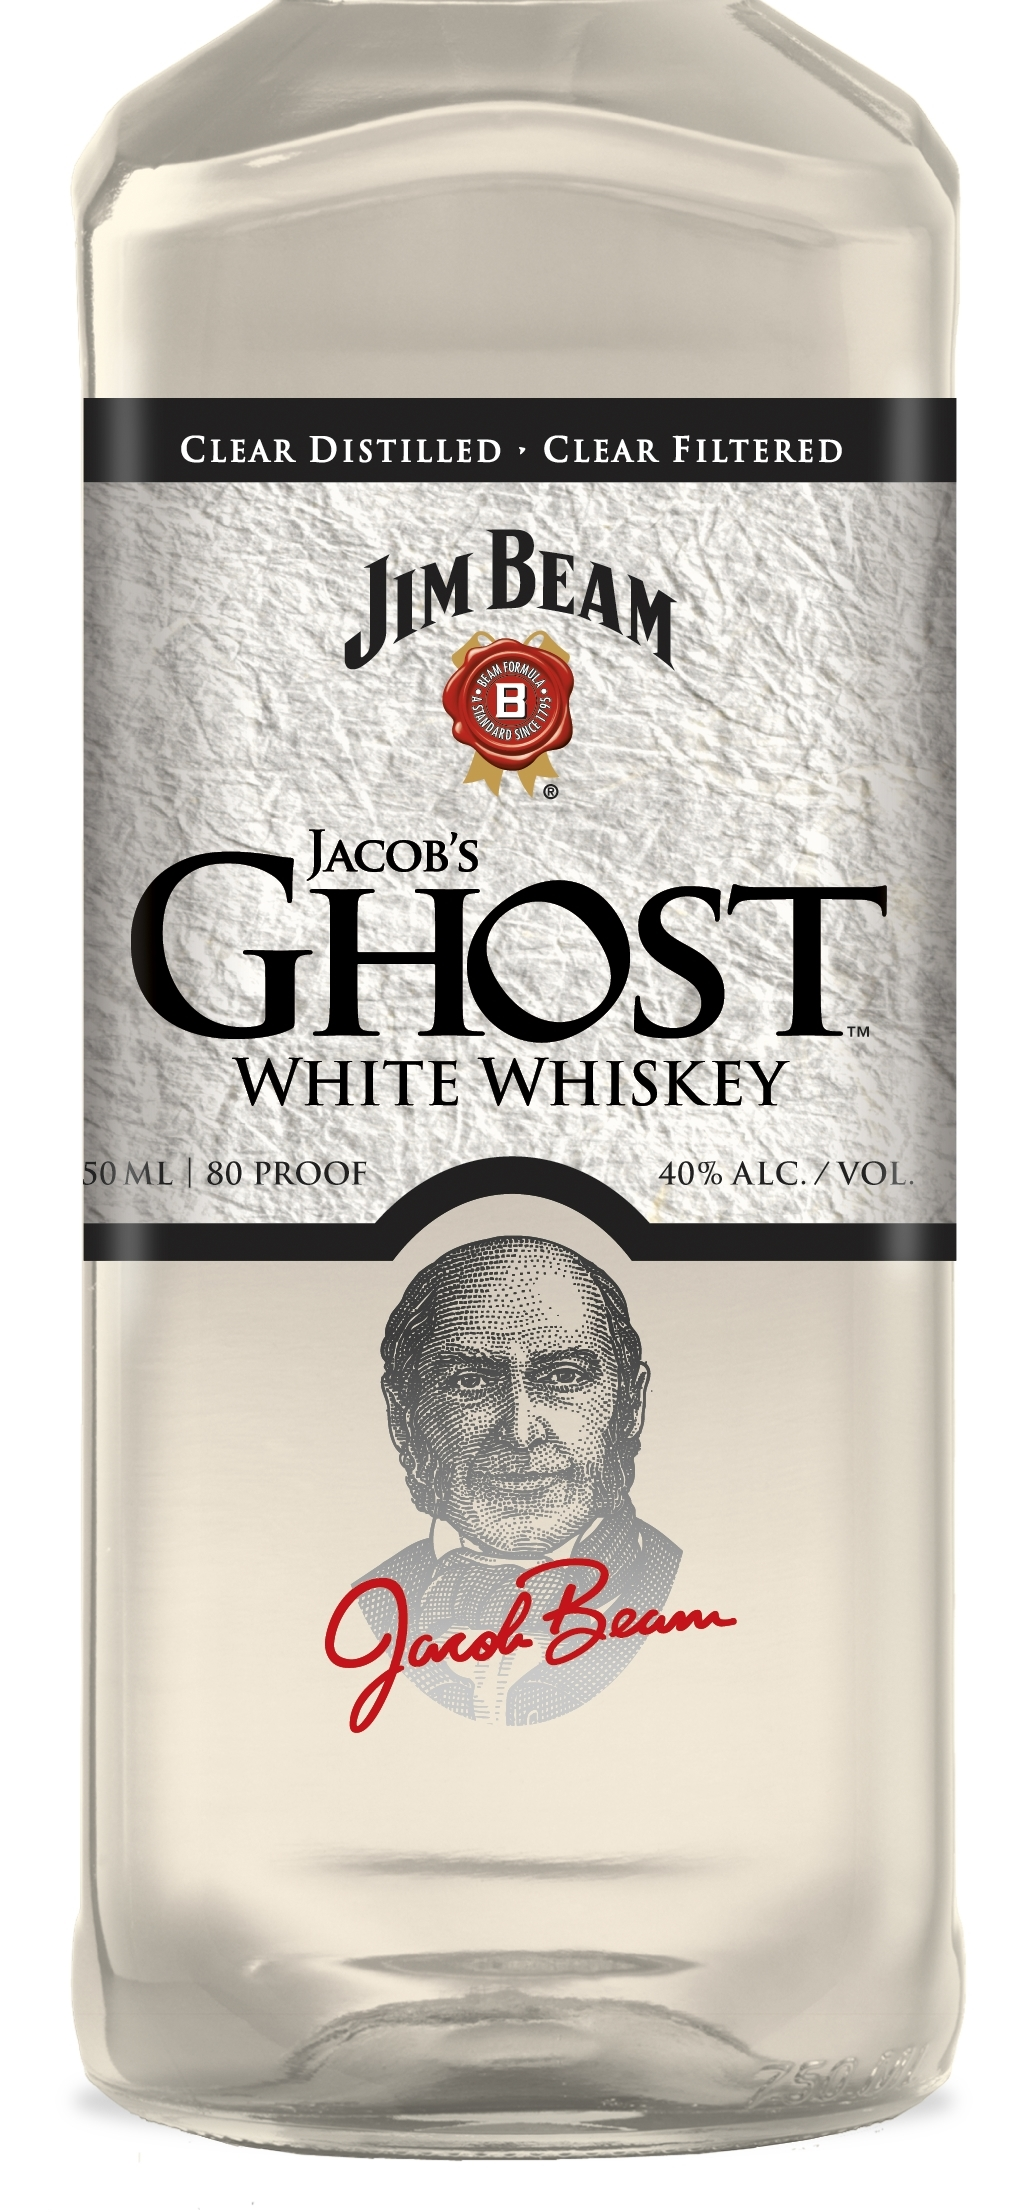 JIM BEAM RELEASES FIRST WHITE WHISKEY